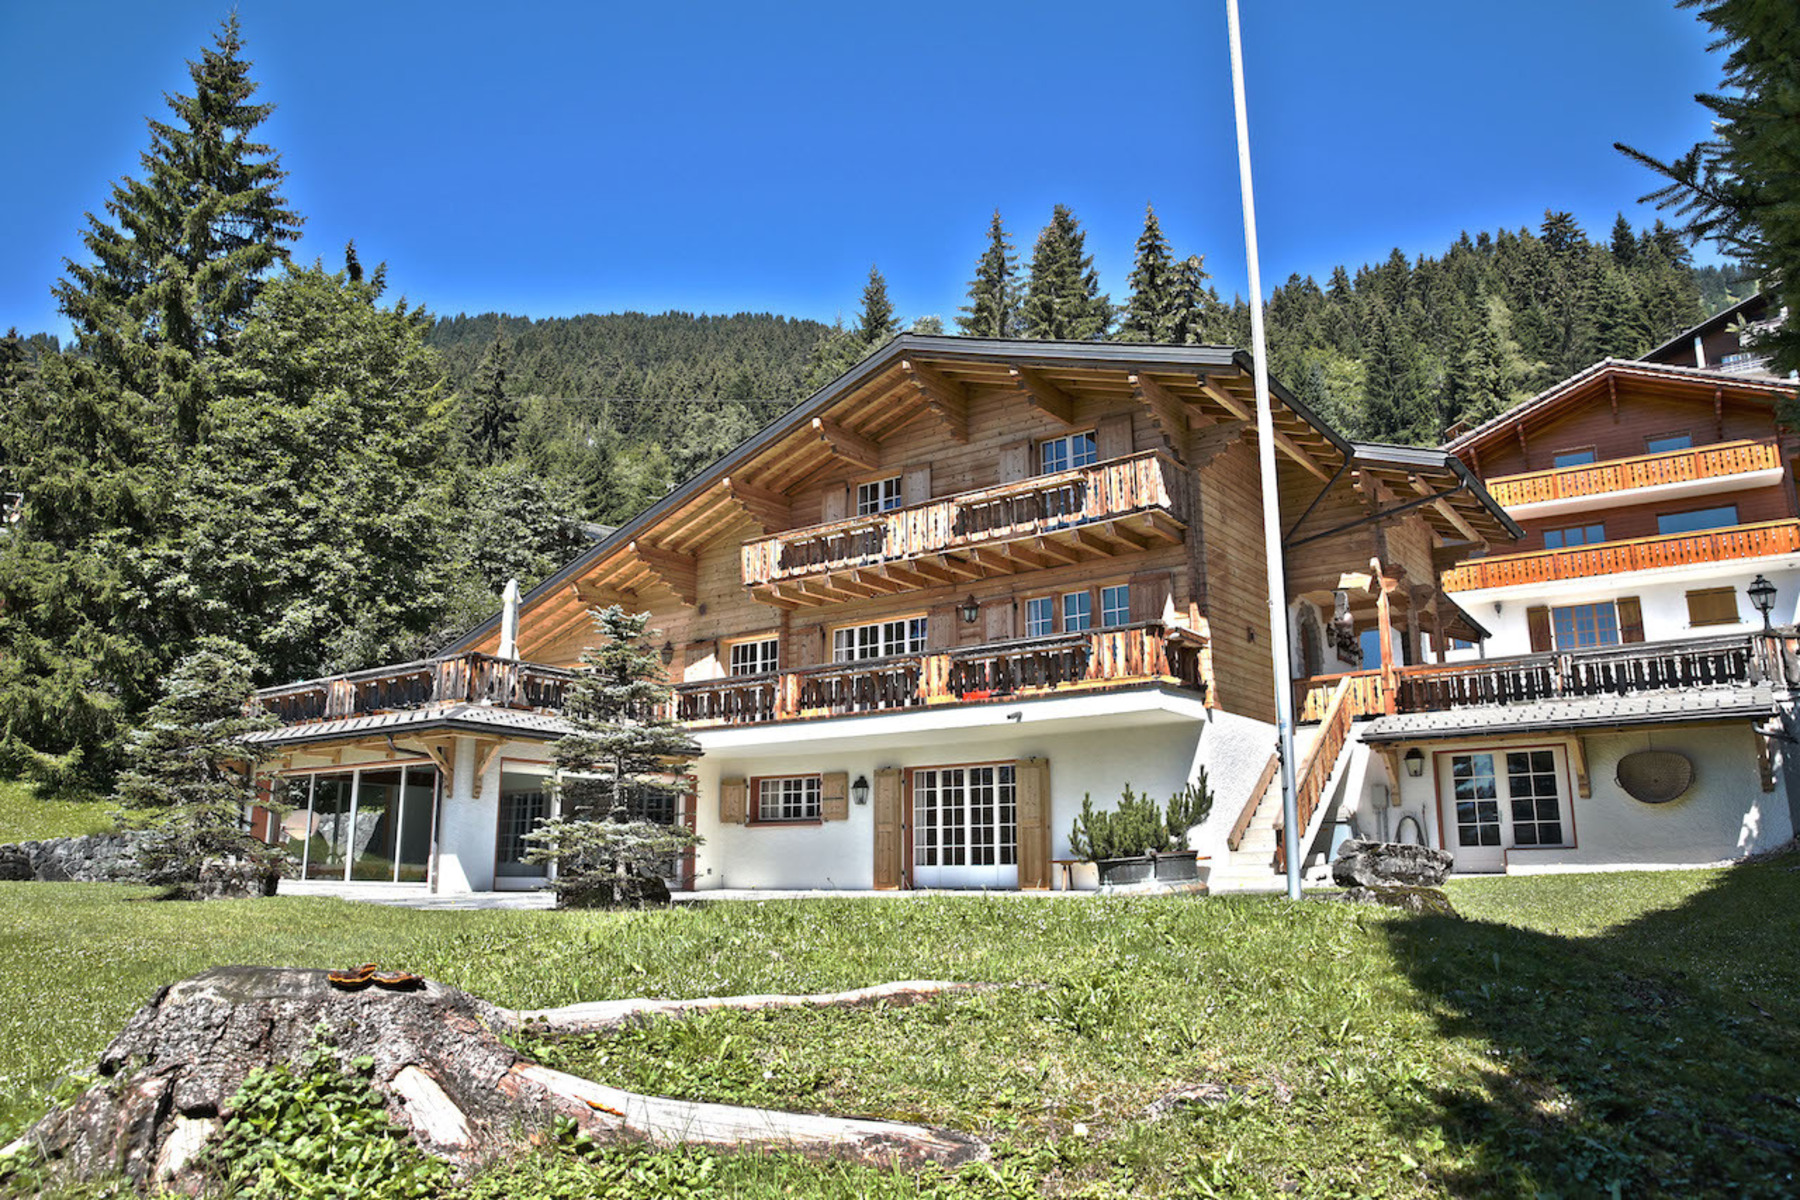 Single Family Home for Sale at Le Clipper Route de la Résidence 61 Chesieres, Vaud, 1885 Switzerland